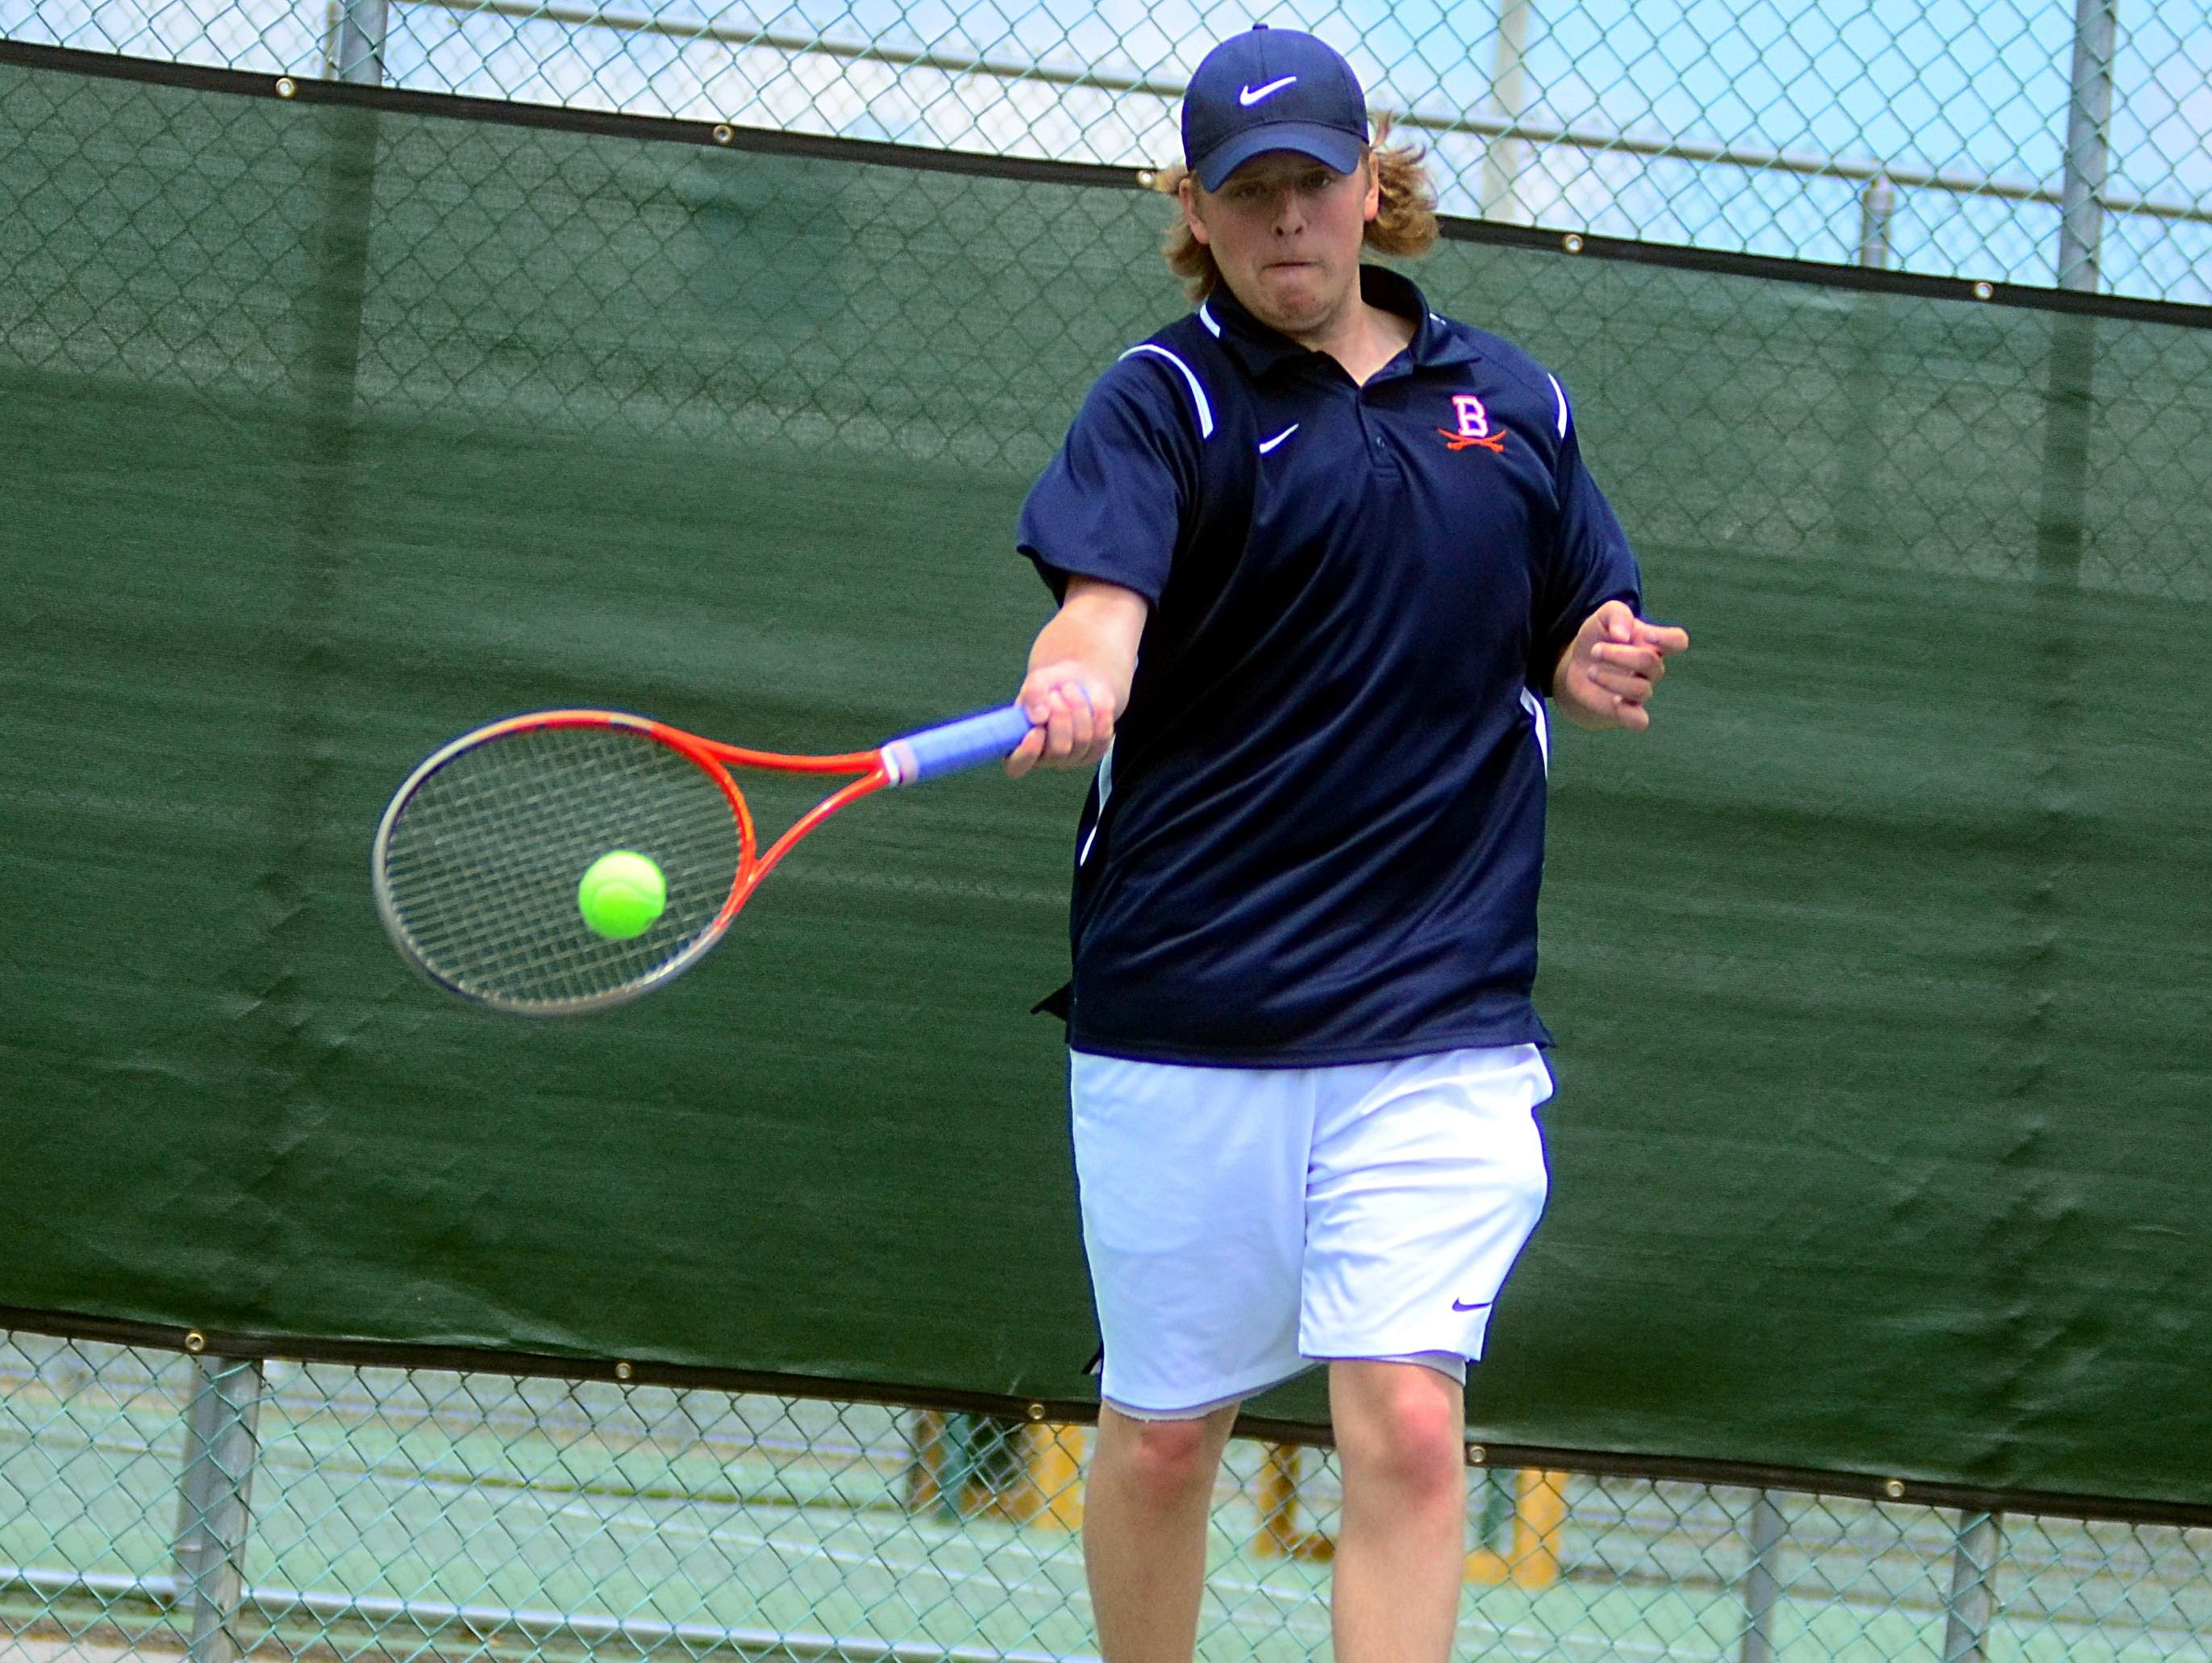 Beech High senior Eli Duncan hits a forehand during his first-round singles match on Tuesday at the District 9-AAA Individual Tennis Tournament. Duncan advanced to the quarterfinals before suffering a straight-set loss to Wilson Central's Michael Mercante.